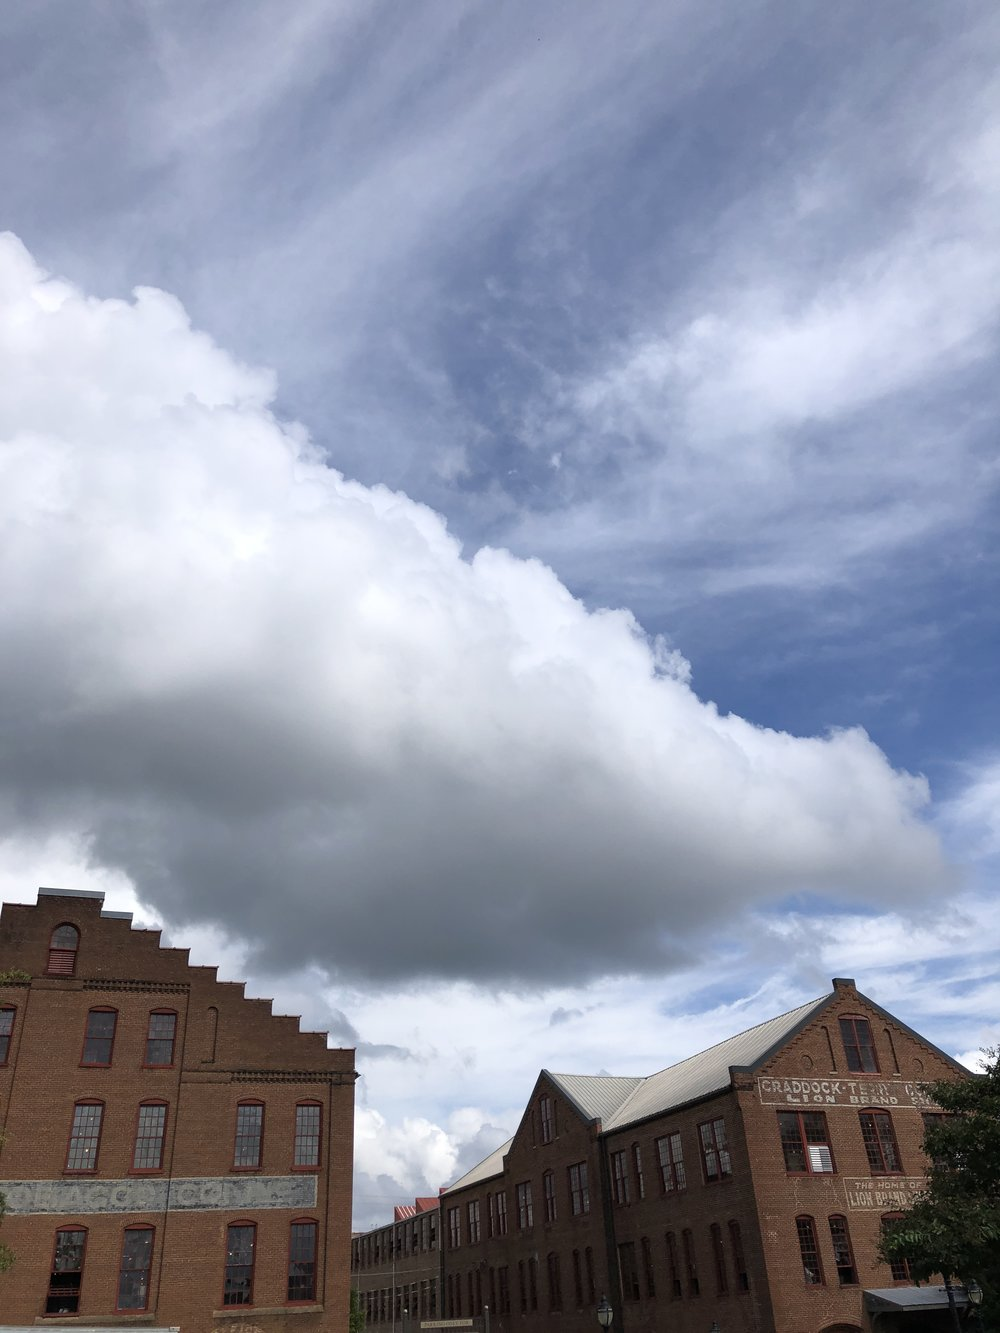 glimsen-cloud-over-warehouses.JPG